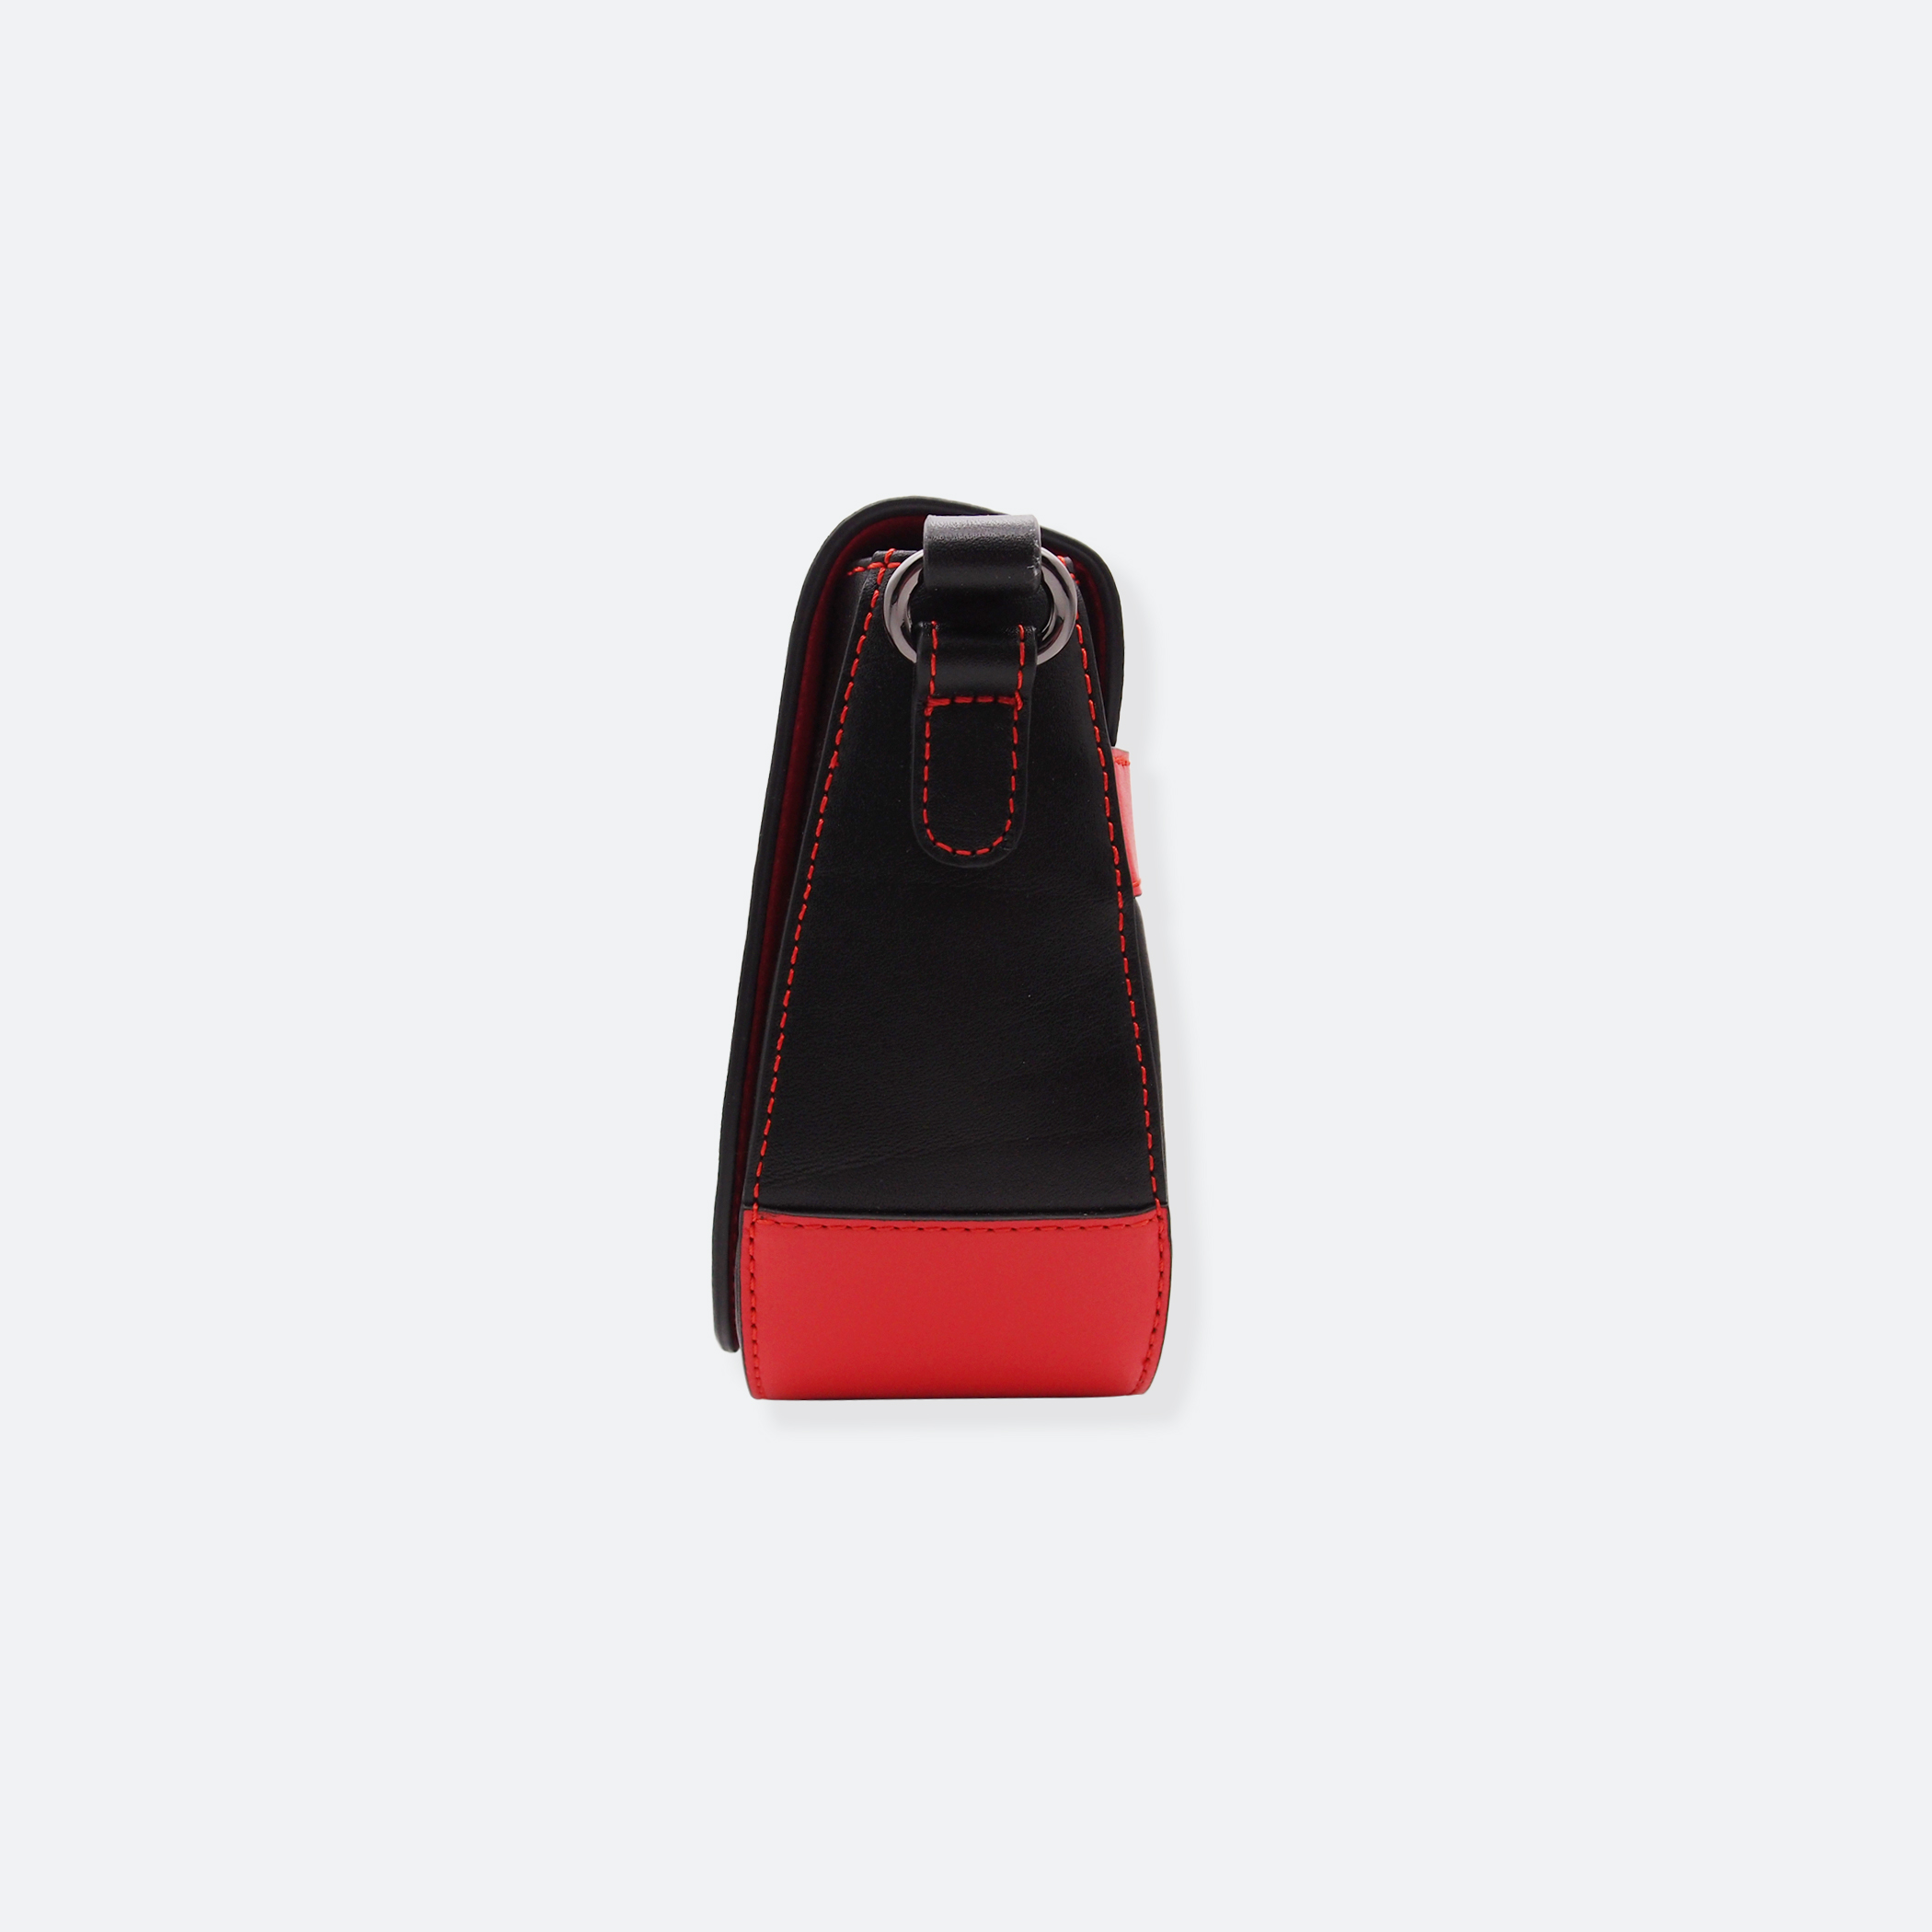 OhMart POP! Bag(Black-Red) 2